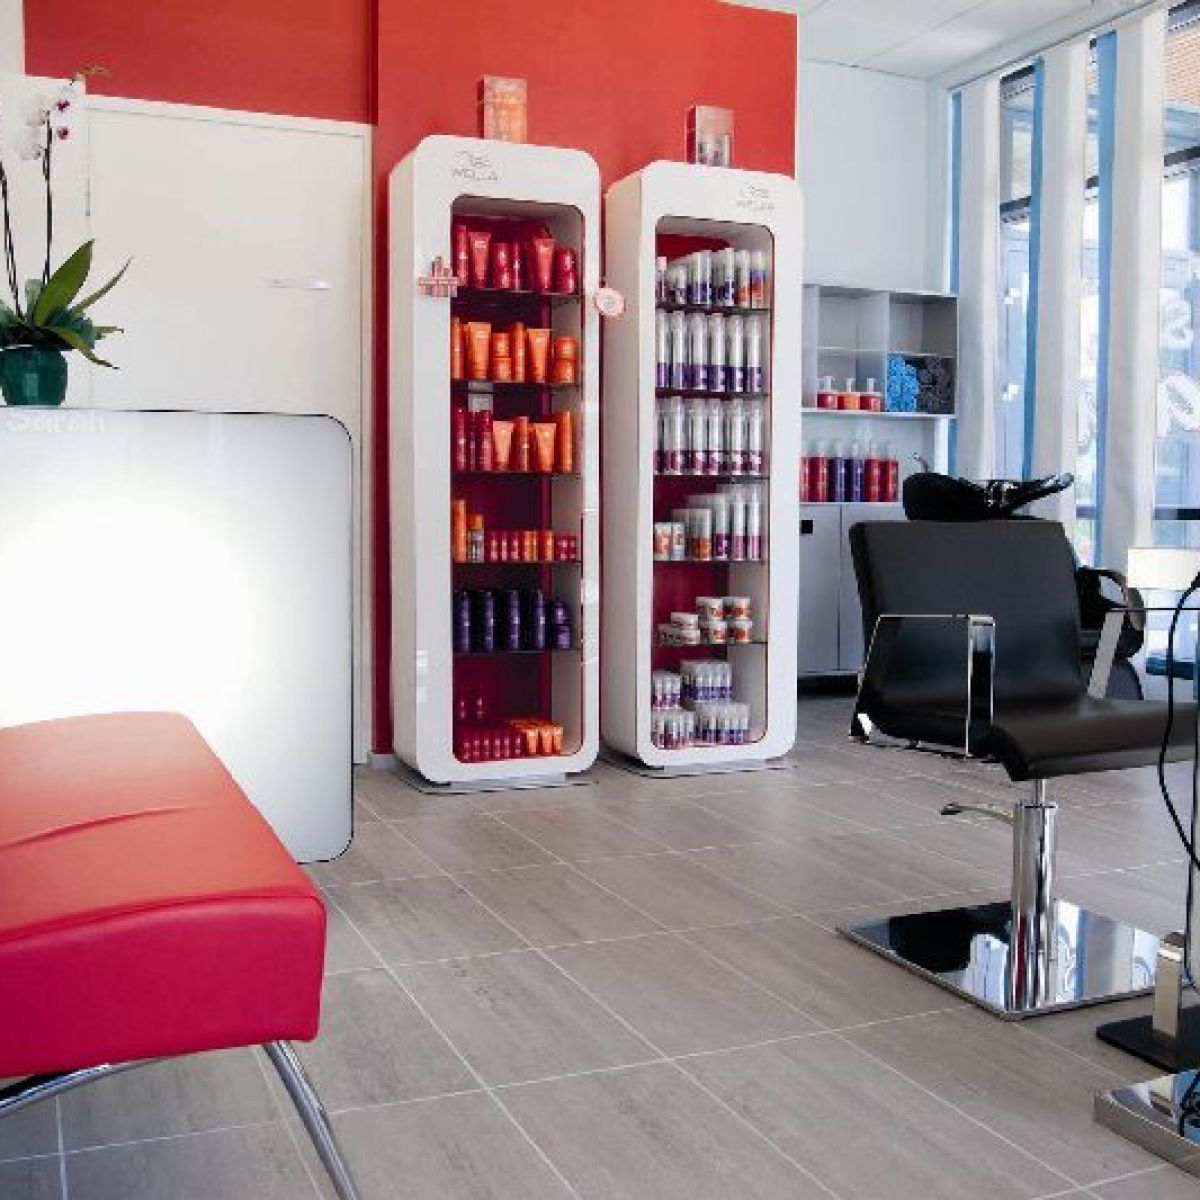 Nelson mobilier fabricant mobilier de coiffure made in for Meuble coiffure